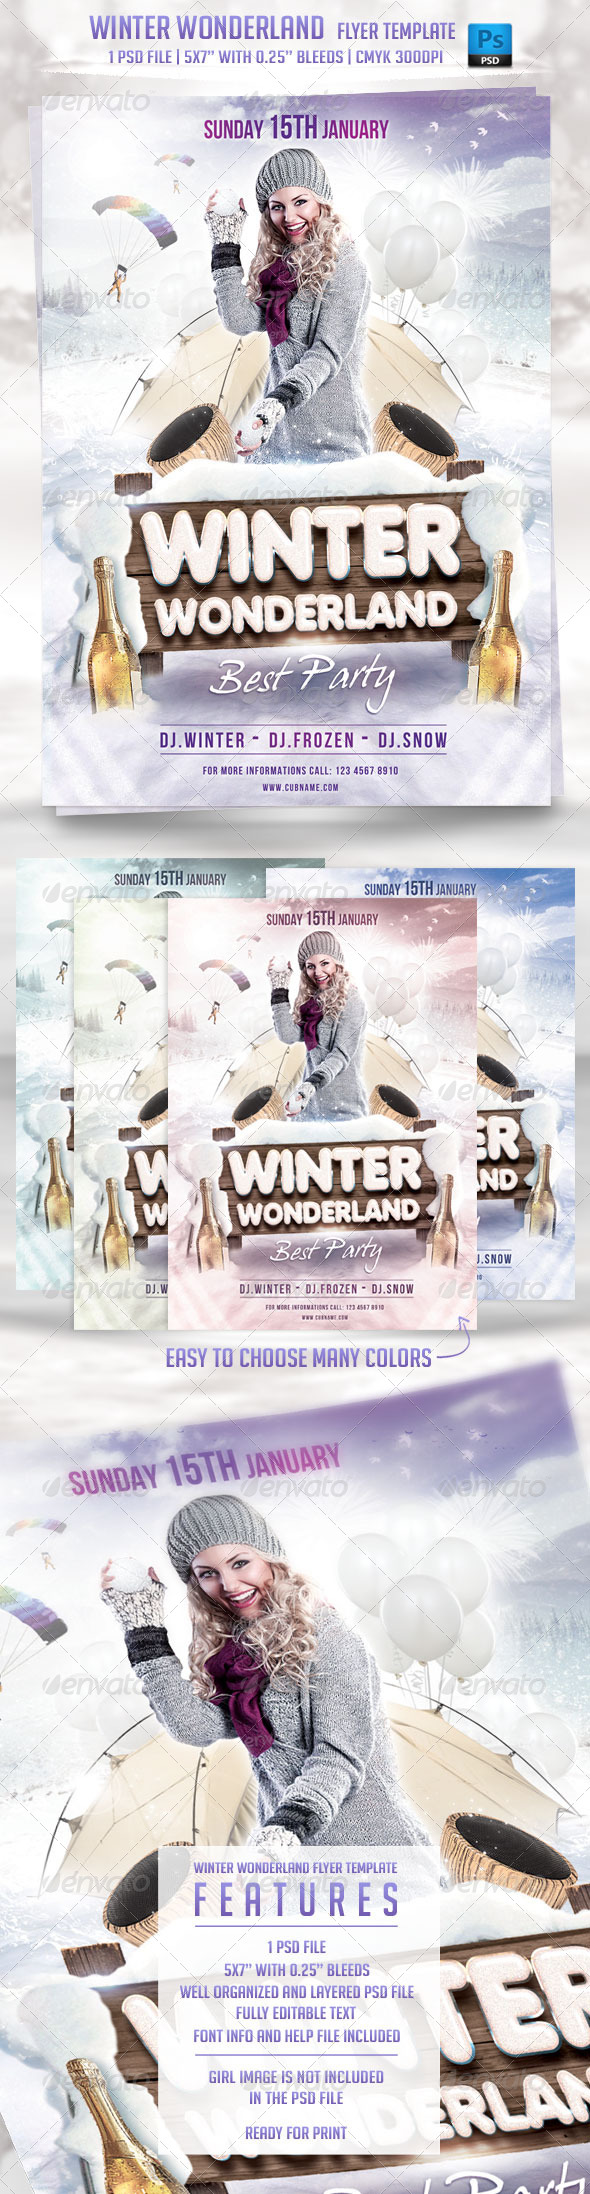 GraphicRiver Winter Wonderland Flyer Template 6400891